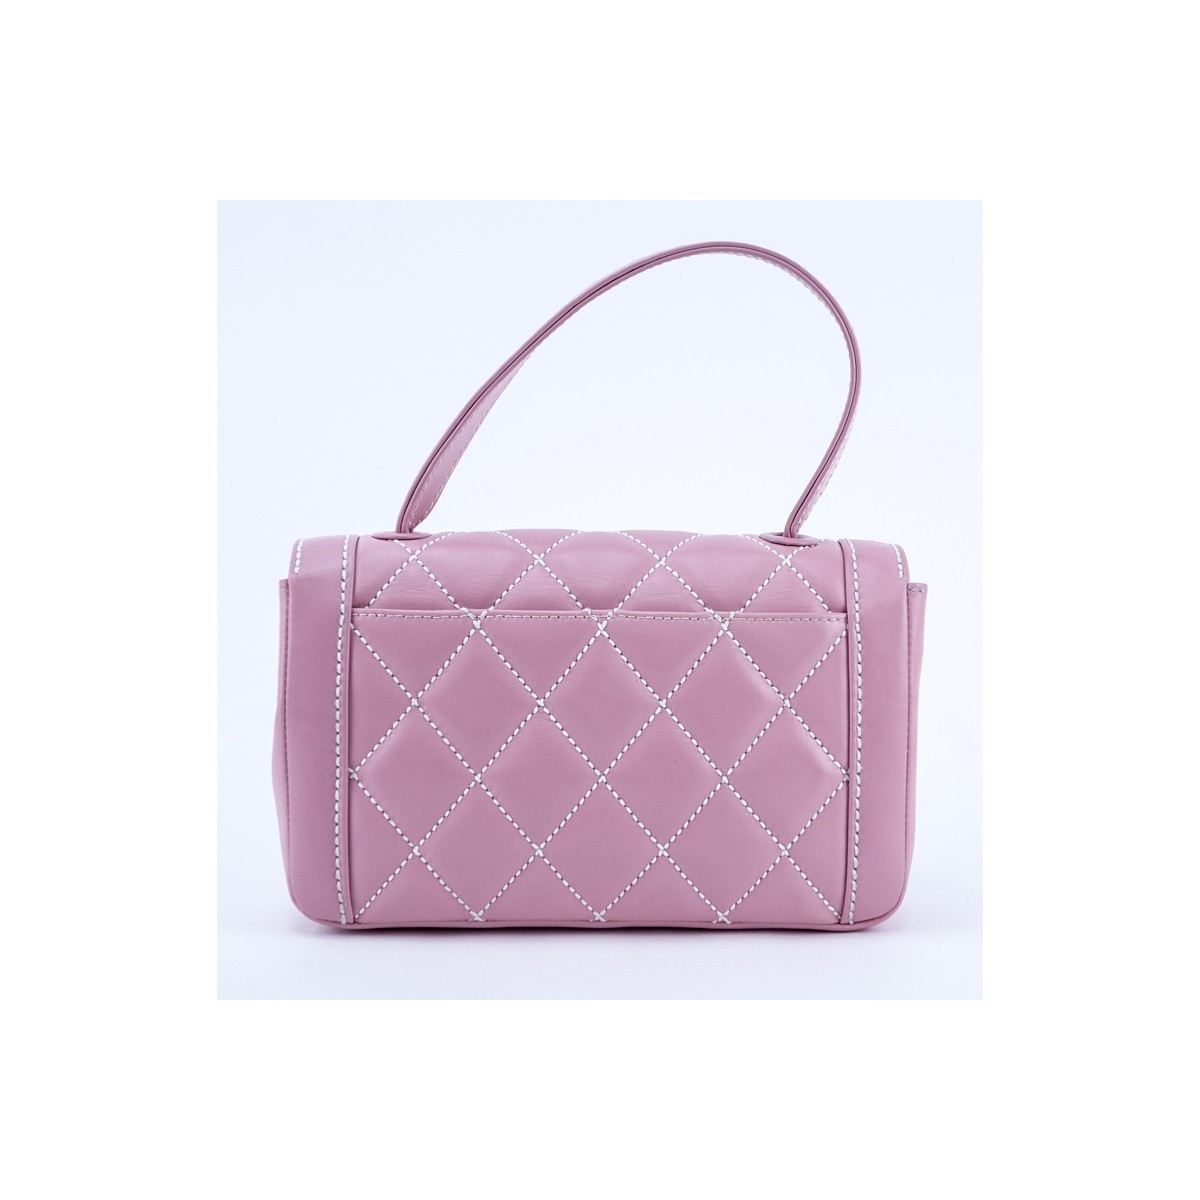 Chanel Light Pink Thick Quilted Leather Top Handle Rectangular Bag. Gold tone hardware, the interior of white monogram fabric with zippered and patch pockets.